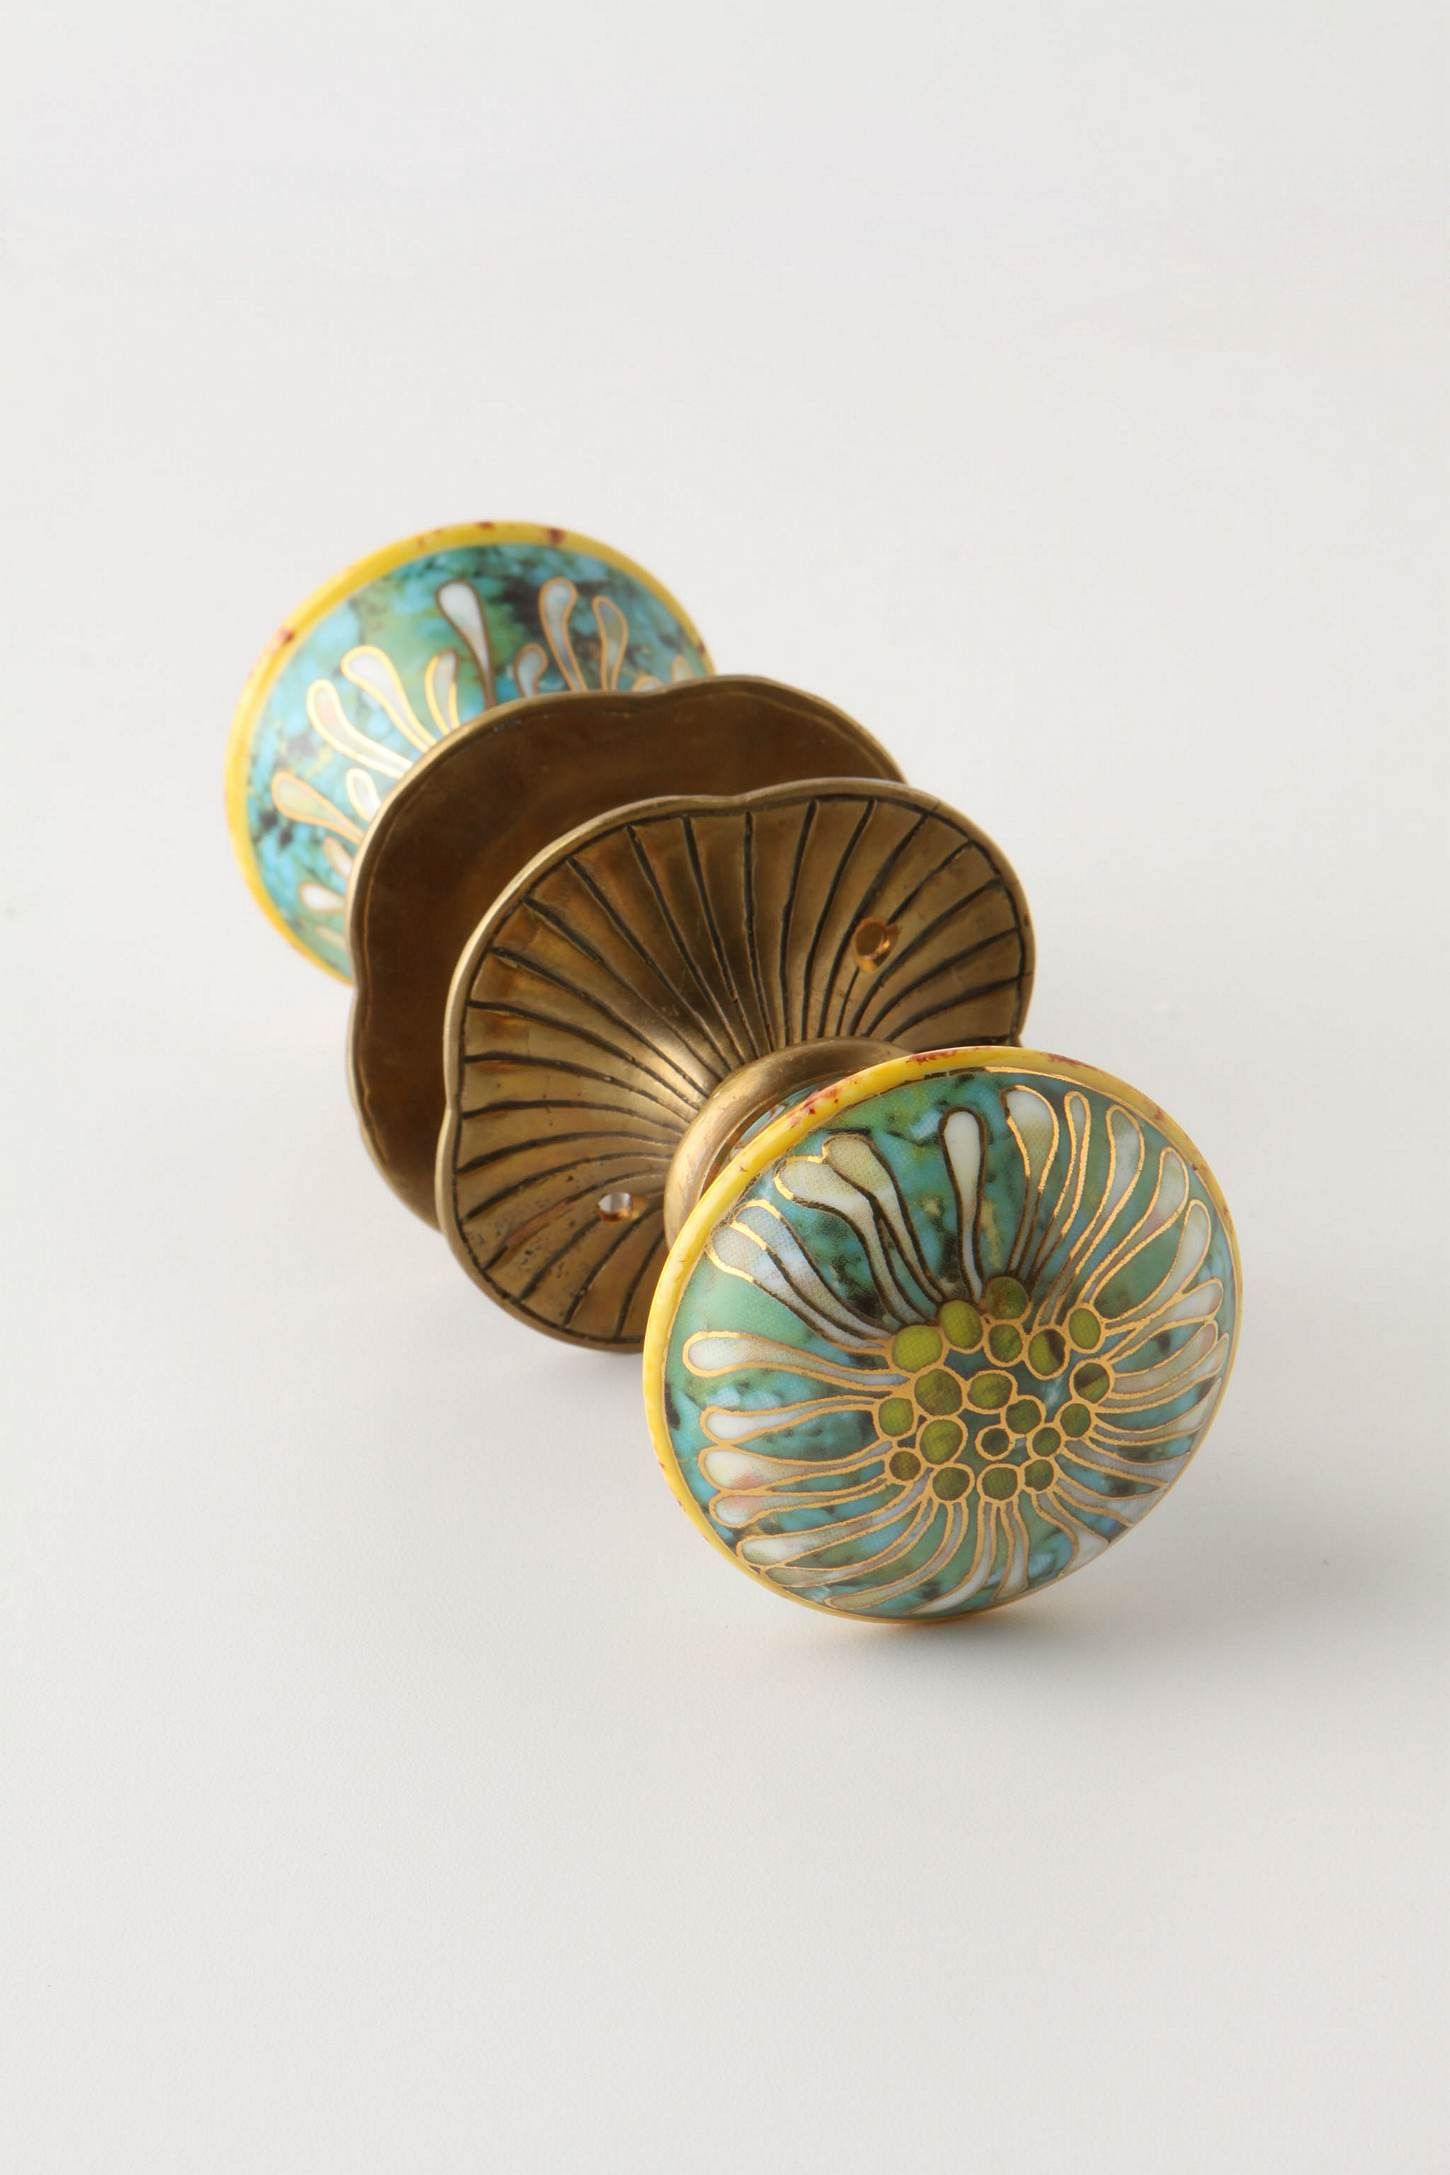 Genial Doorknob Via Anthropologie